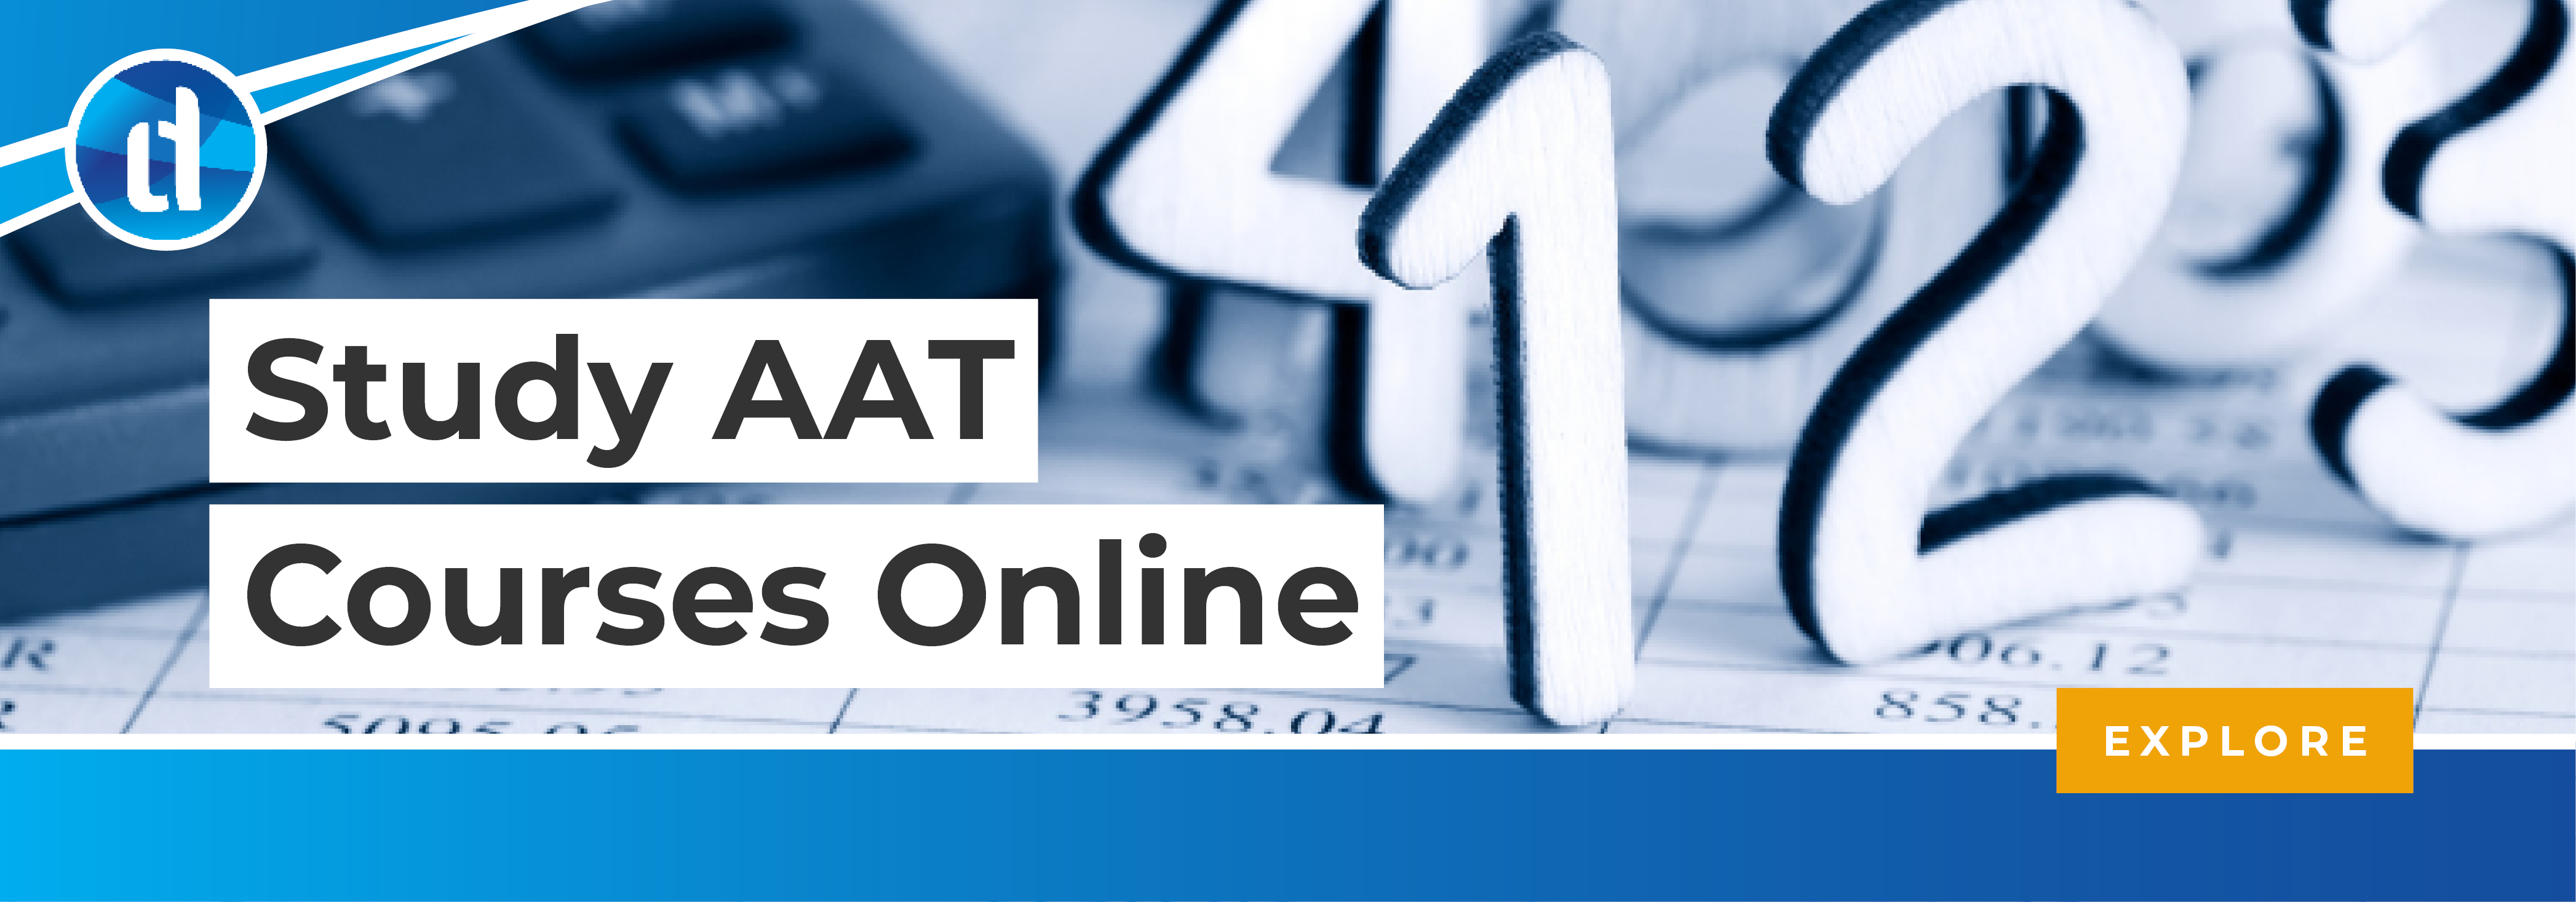 learndirect - Study AAT Courses Online